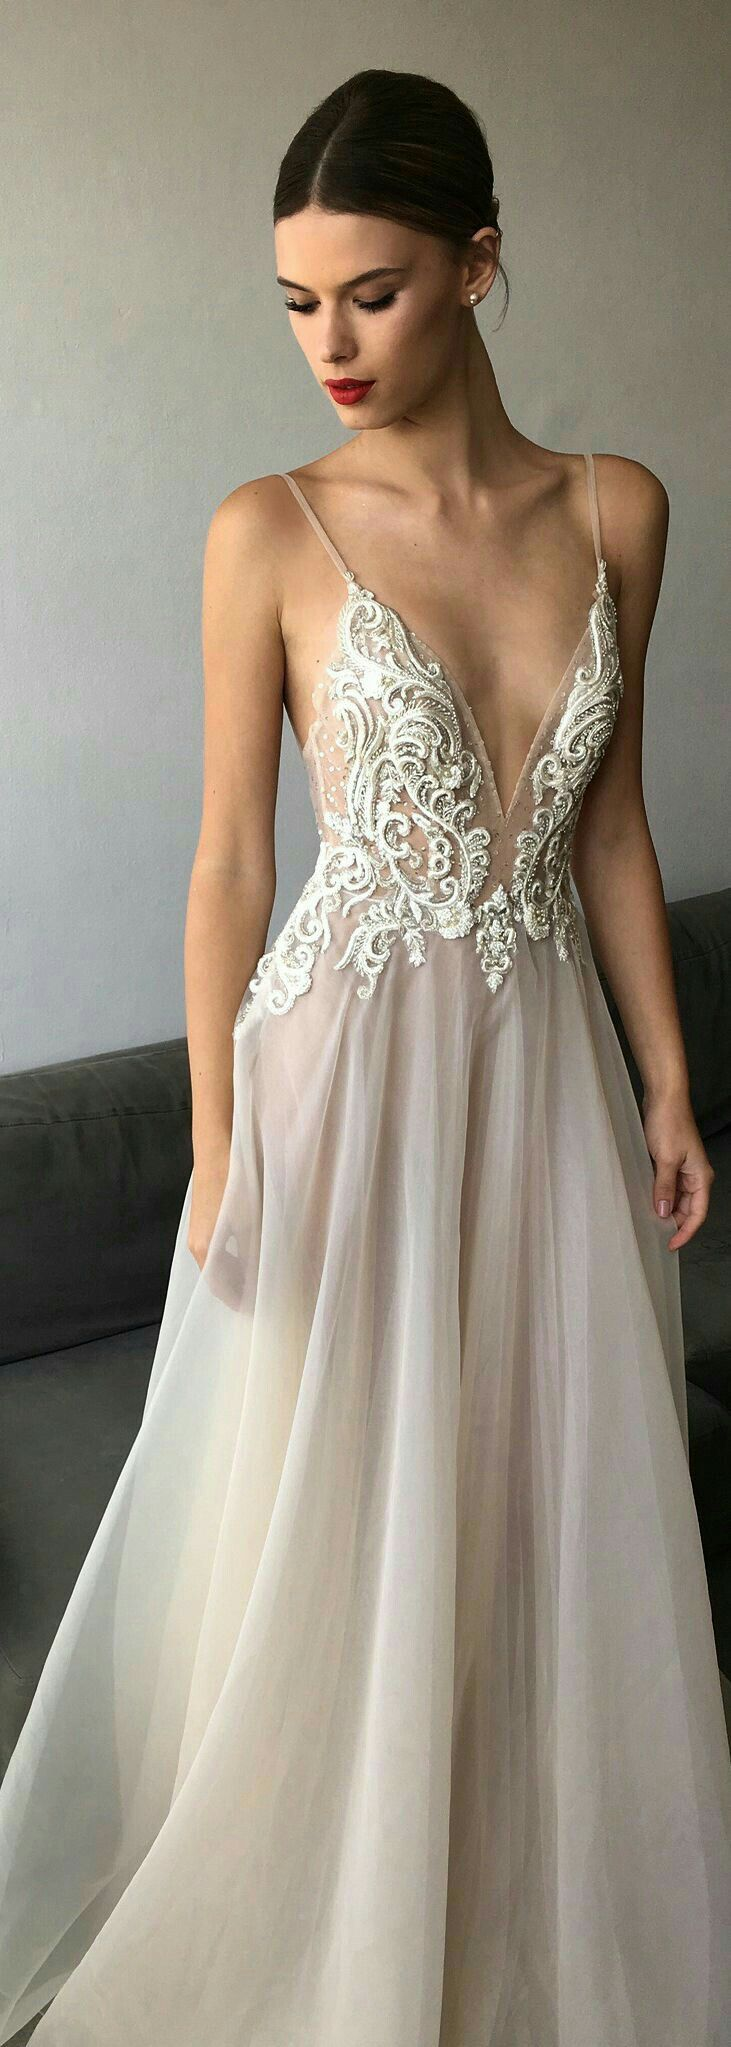 Find More at => http://feedproxy.google.com/~r/amazingoutfits/~3/A-R7wWsvdu0/AmazingOutfits.page